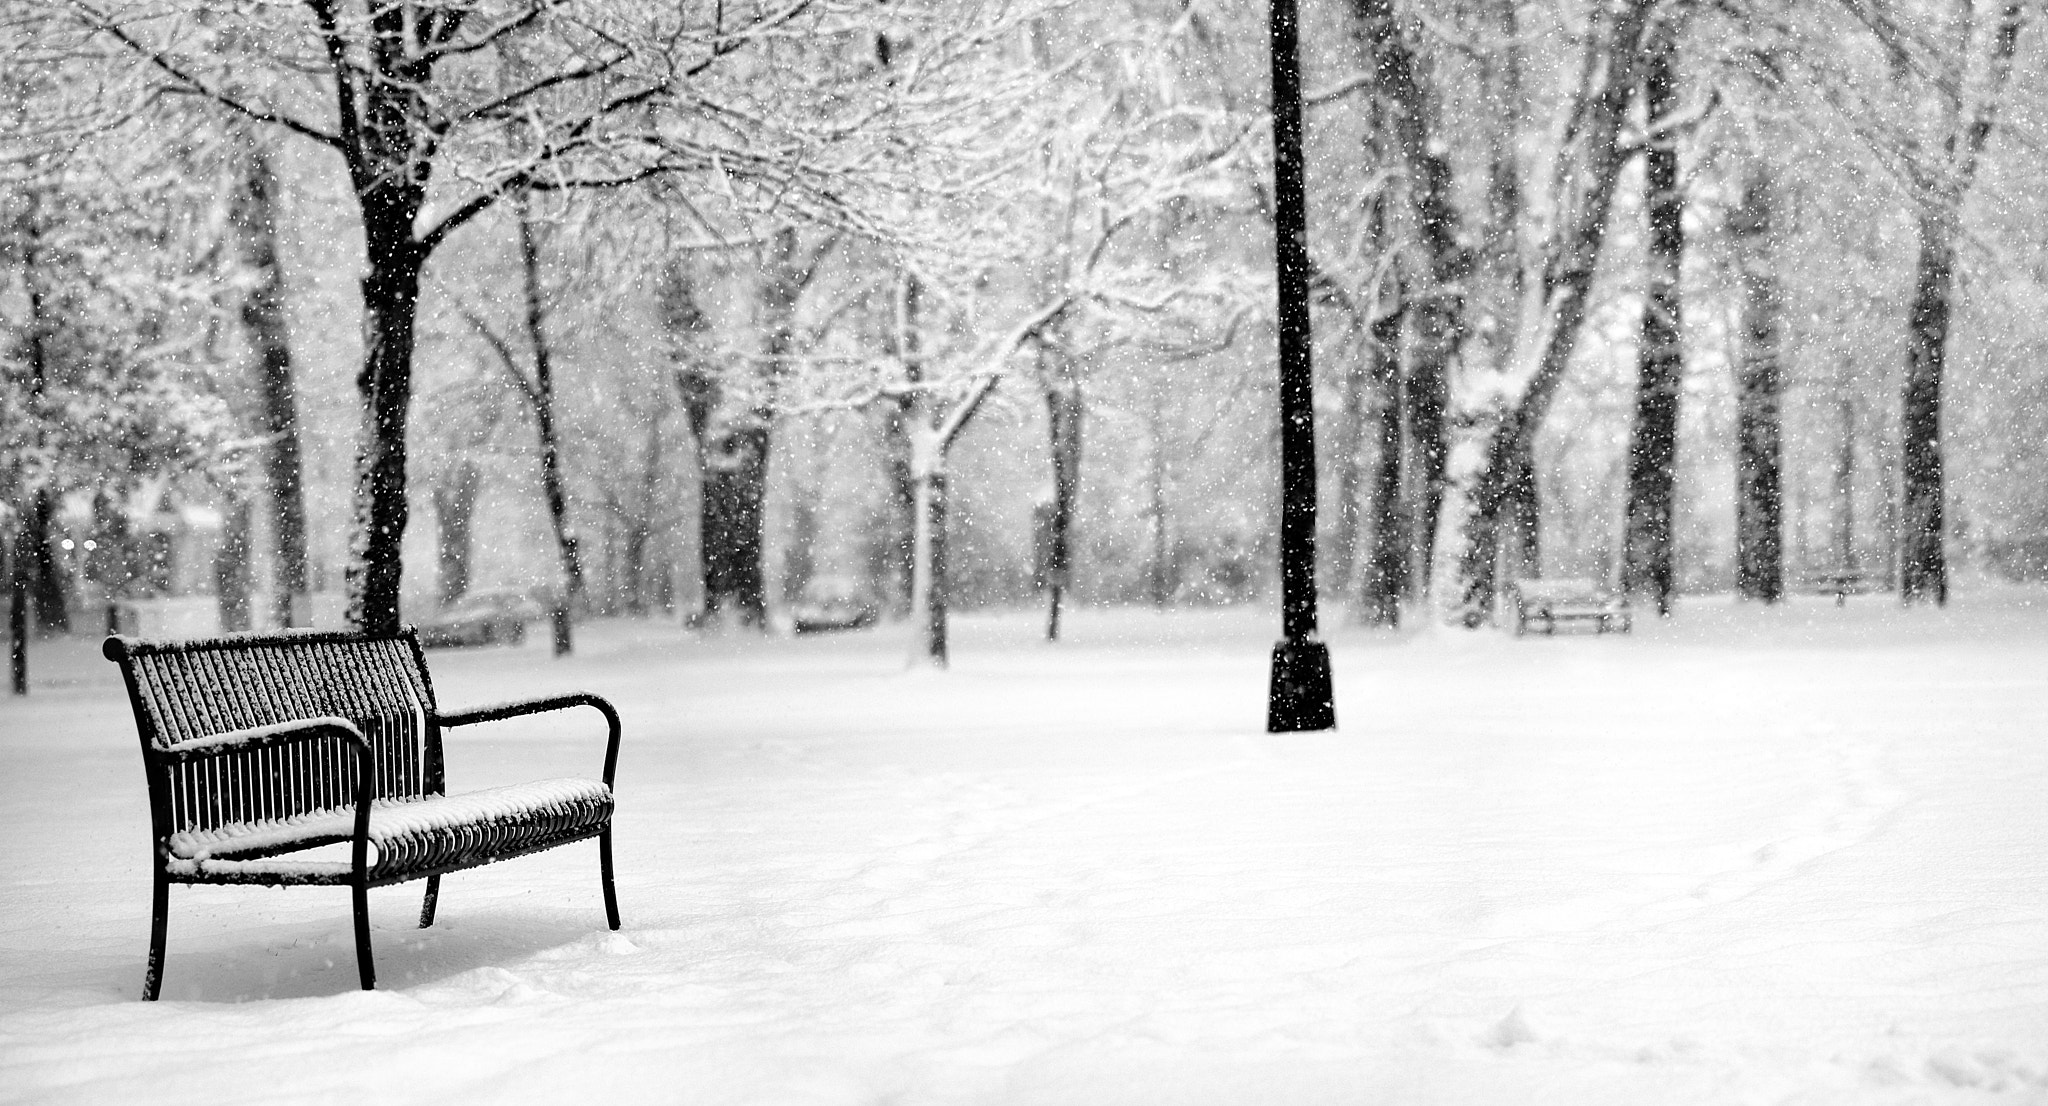 Photograph Solitude by Chad Galloway on 500px